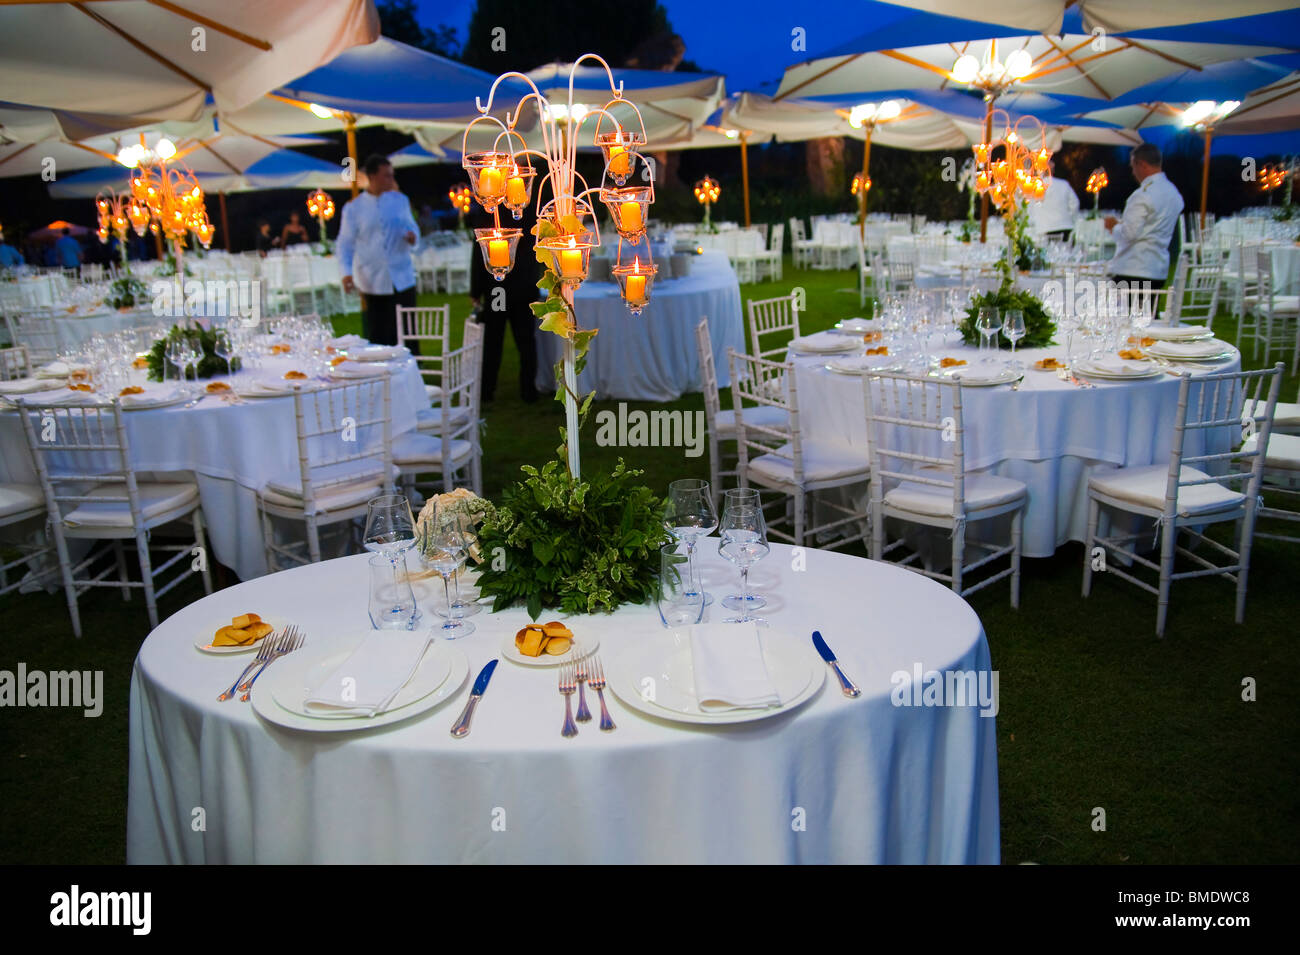 Outdoor wedding dinner table place setting at night stock Outdoor dinner table setting